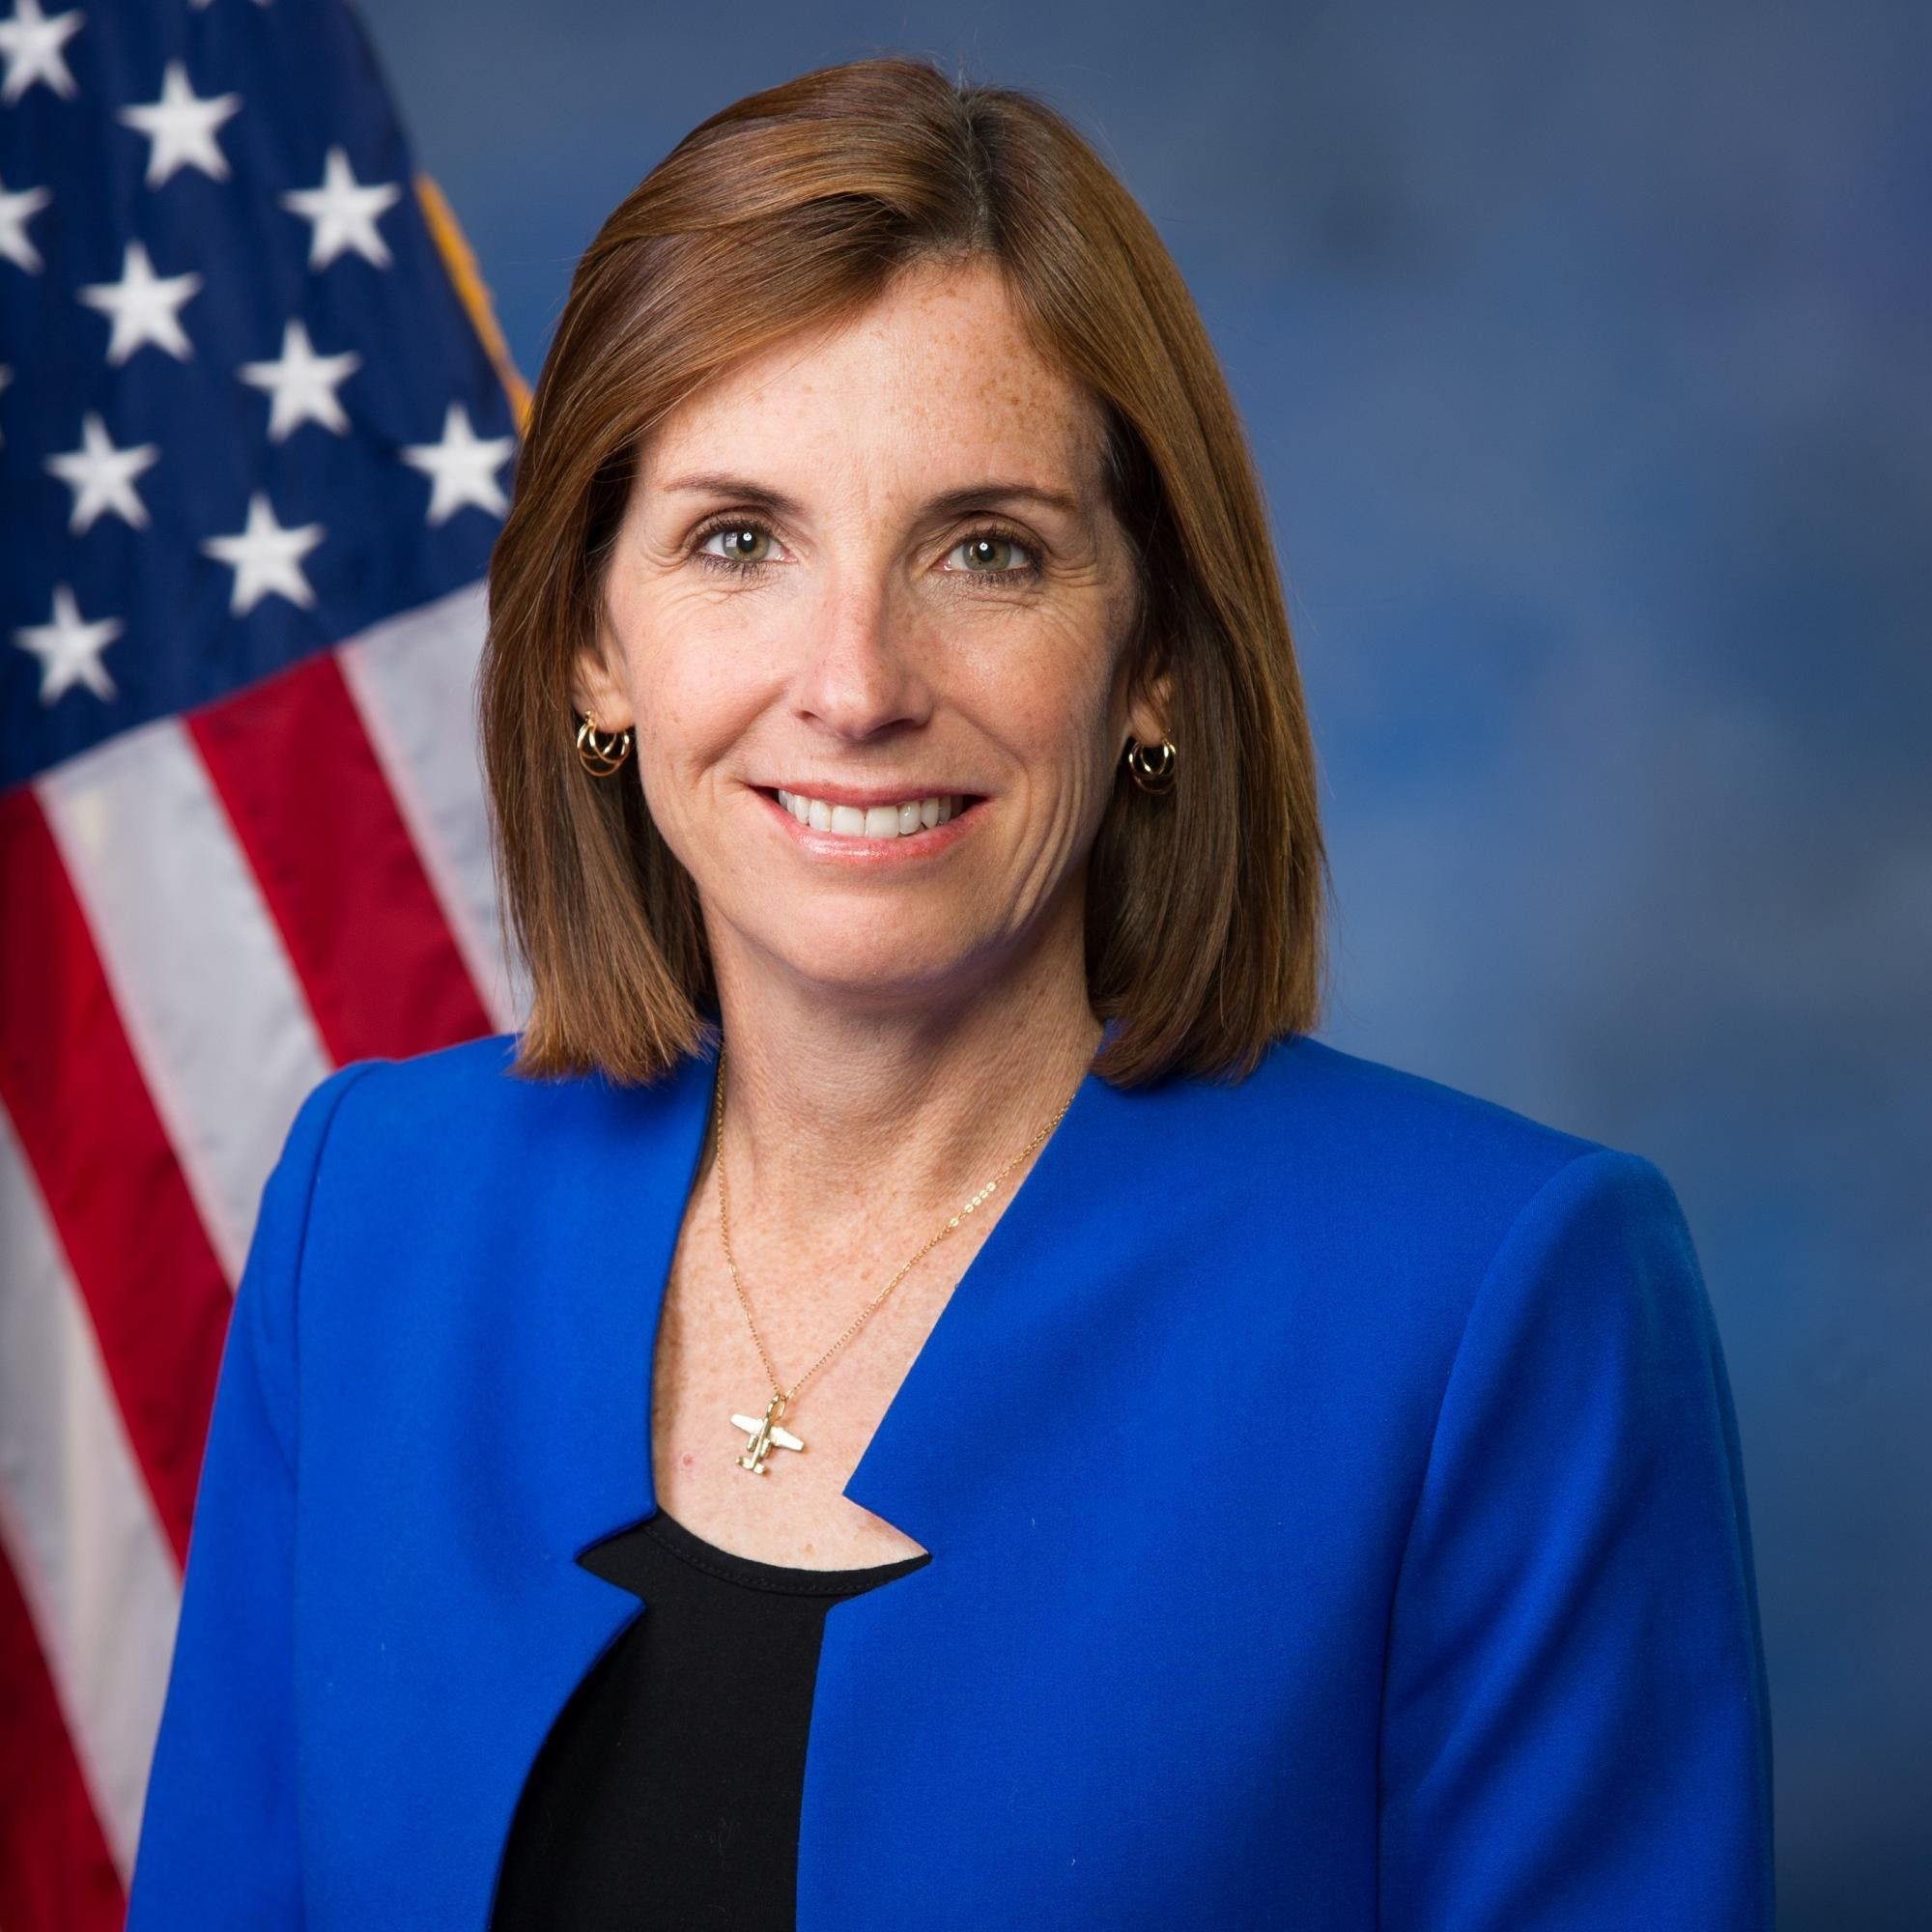 Mcsally headshot